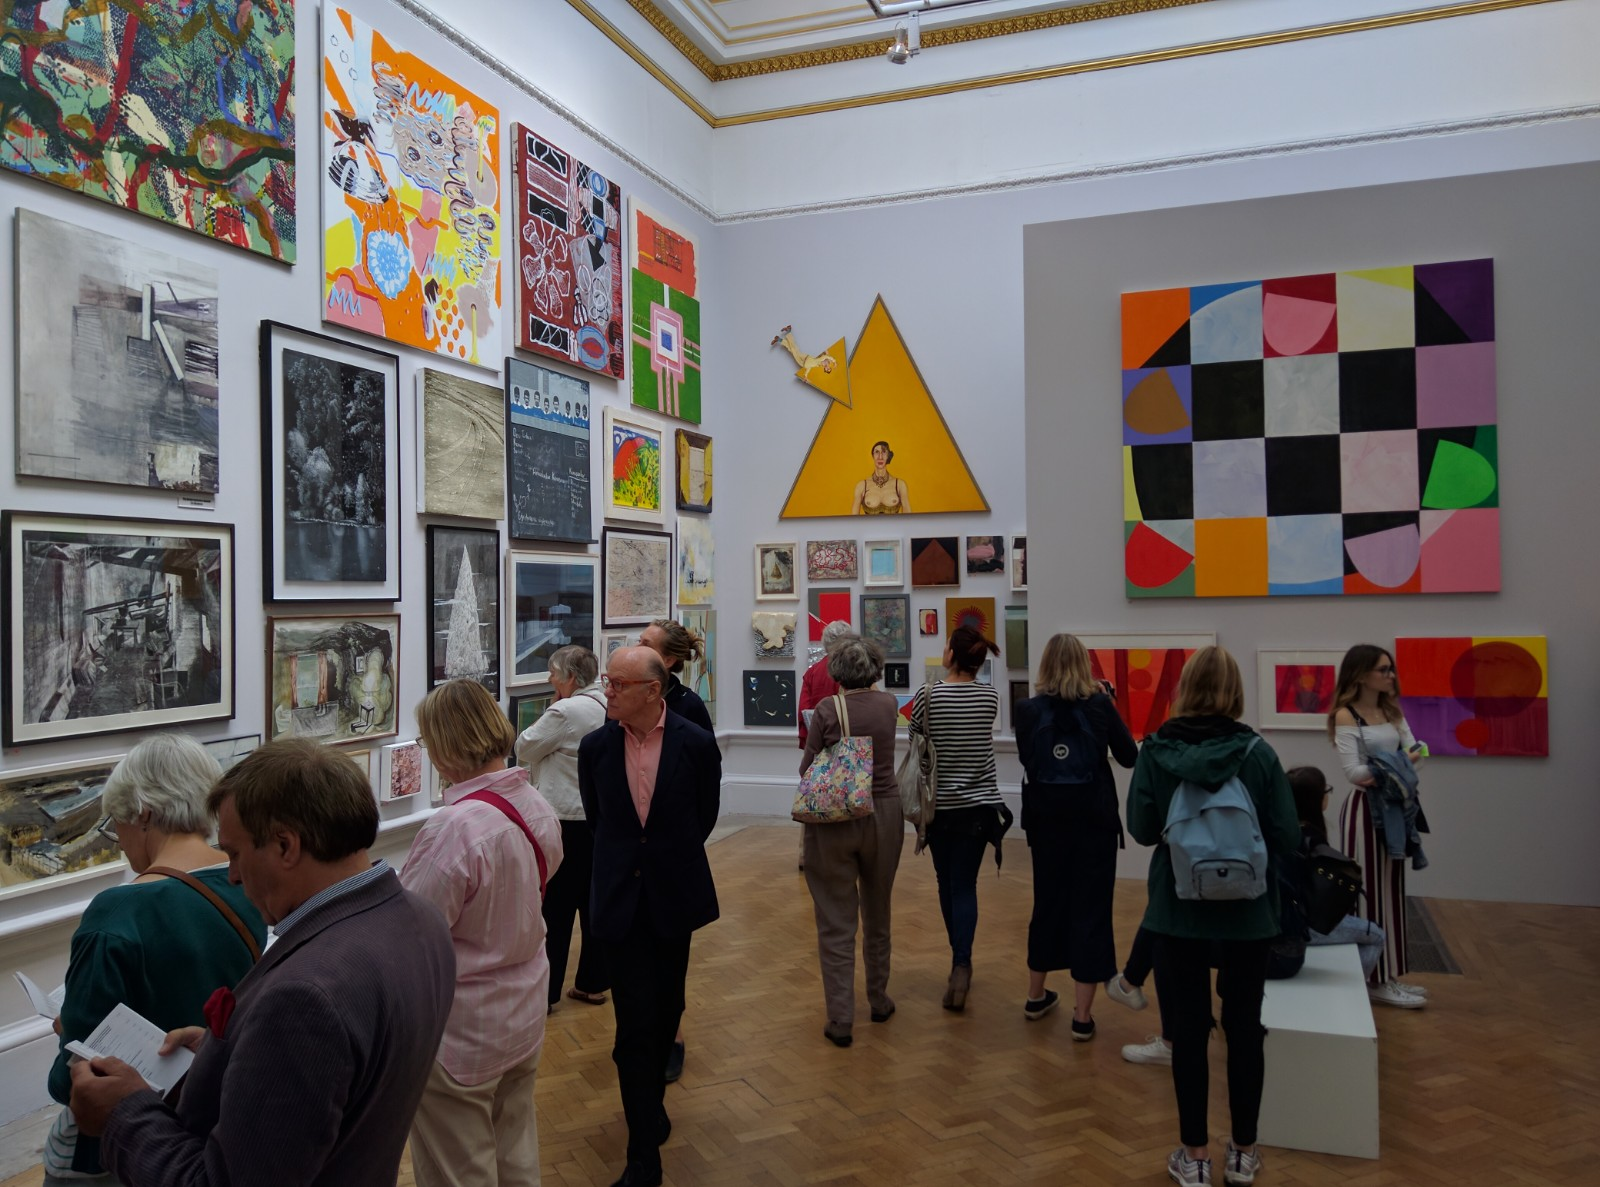 Summer Exhibition 2017, 13 June - 20 August 2017, Royal Academy of Arts, Burlington House, London